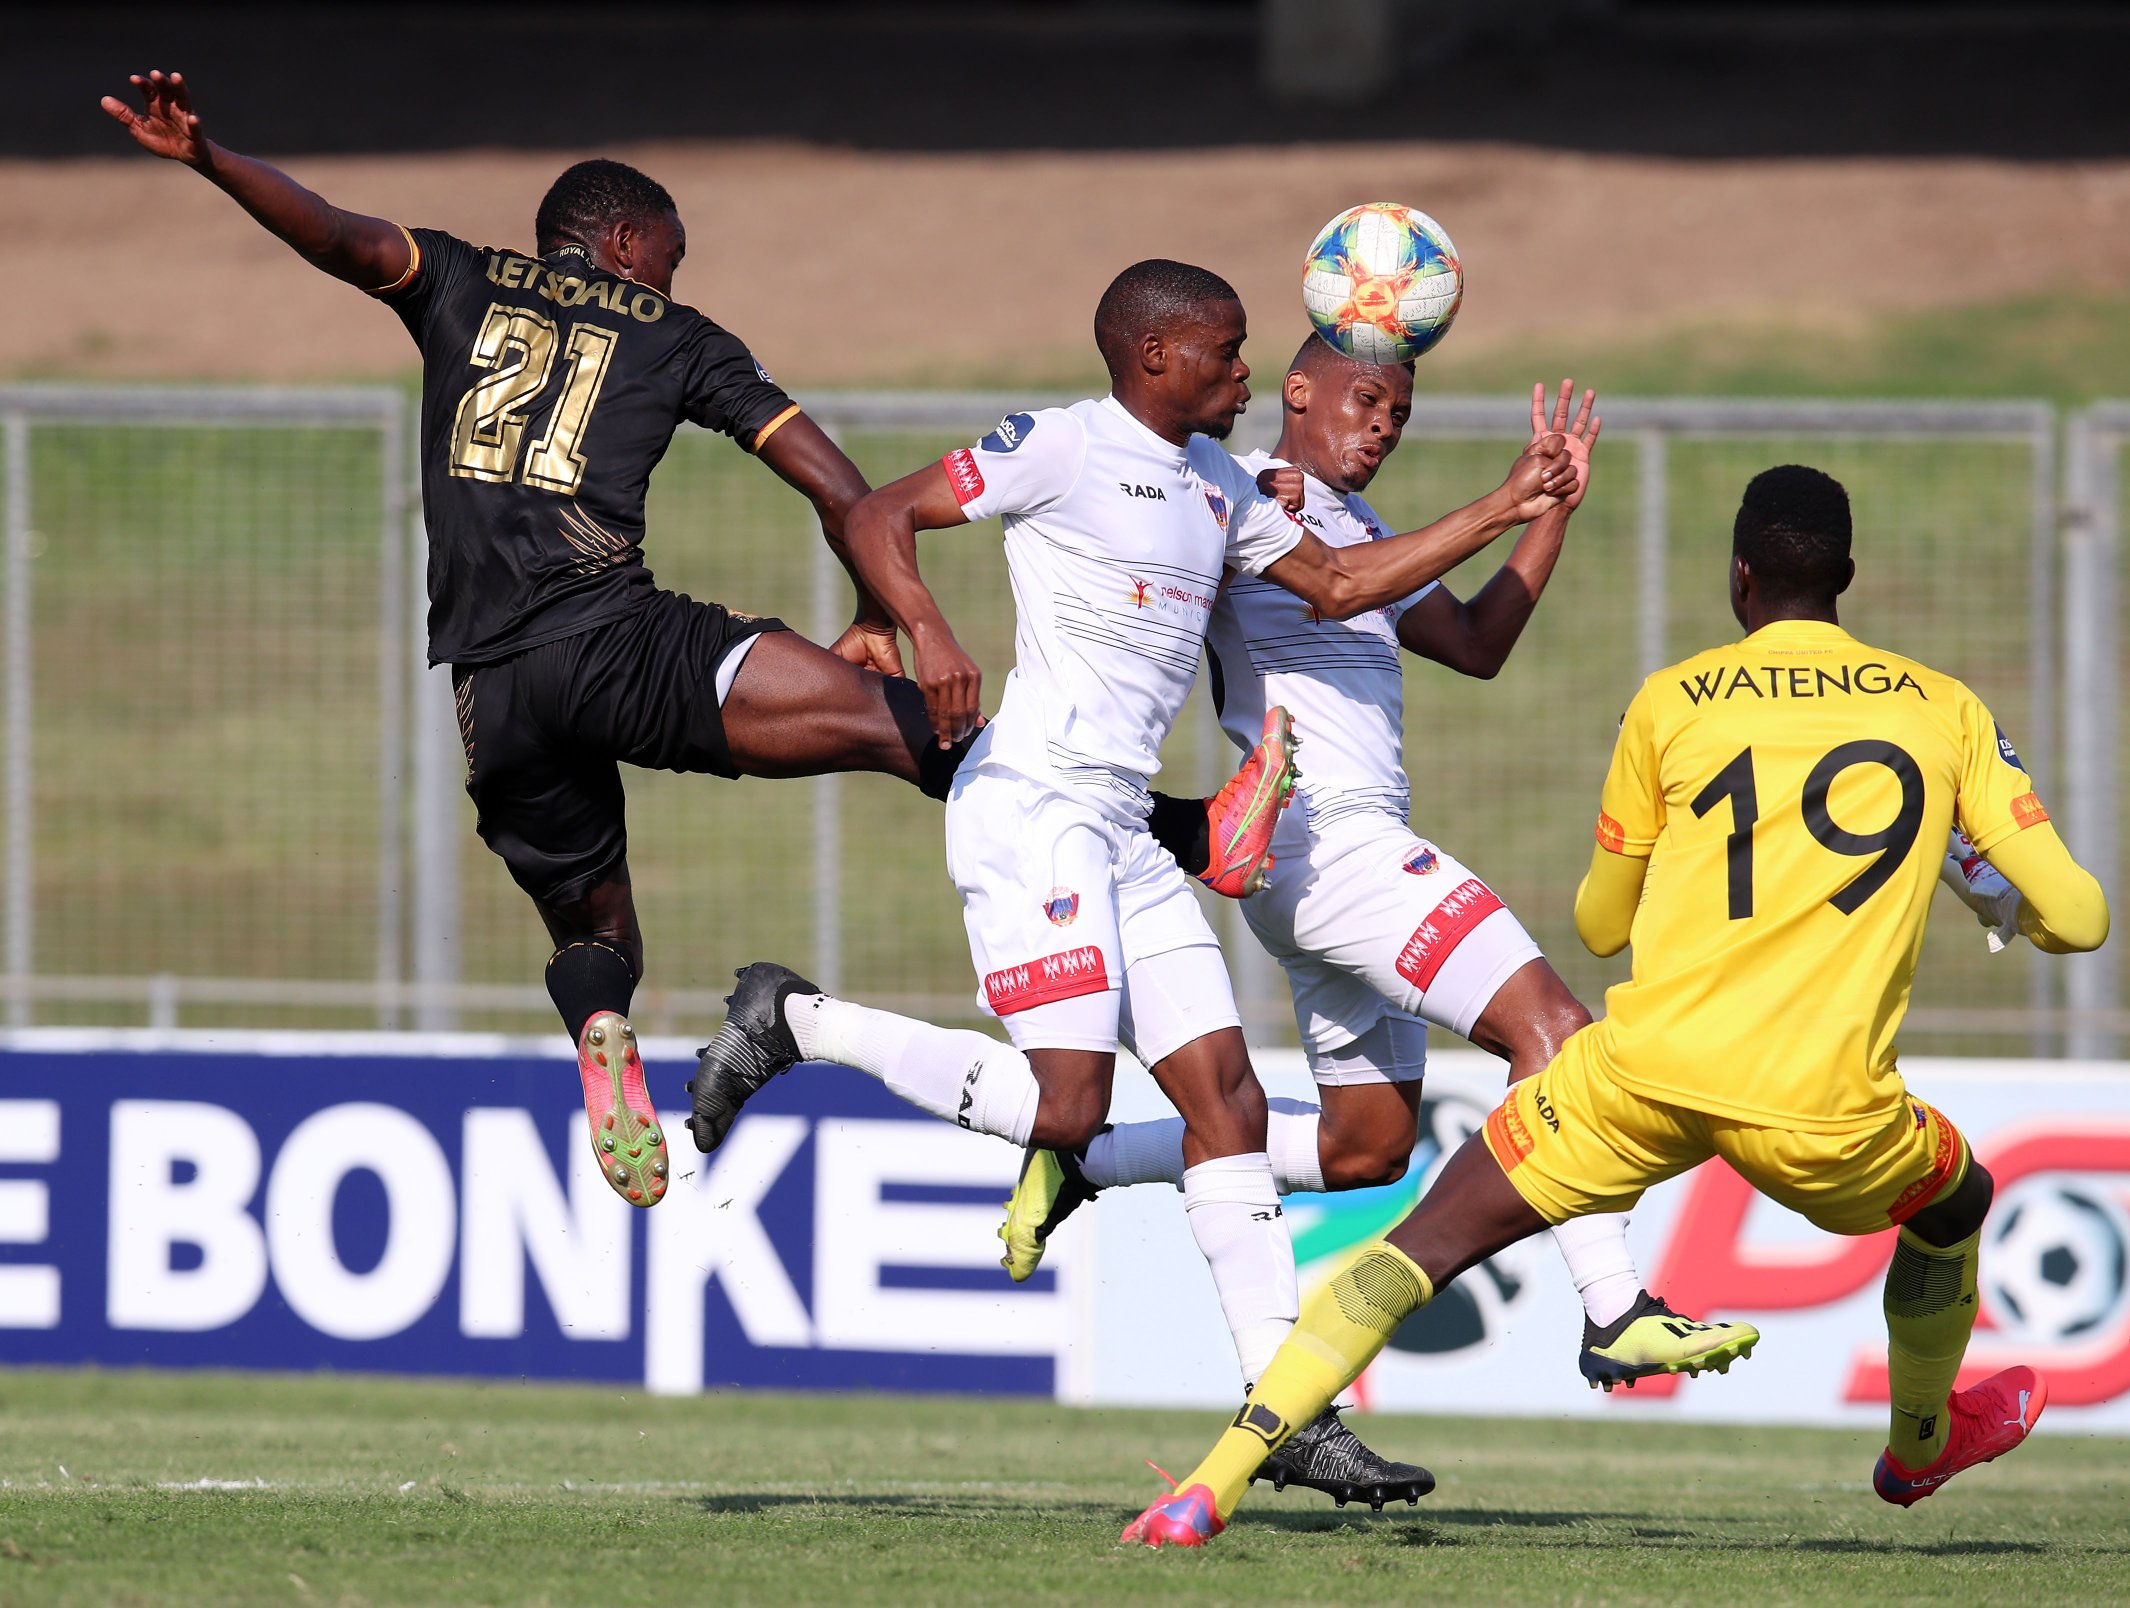 ROYAL SINK CHIPPA FOR FIRST DSTV PREMIERSHIP WIN